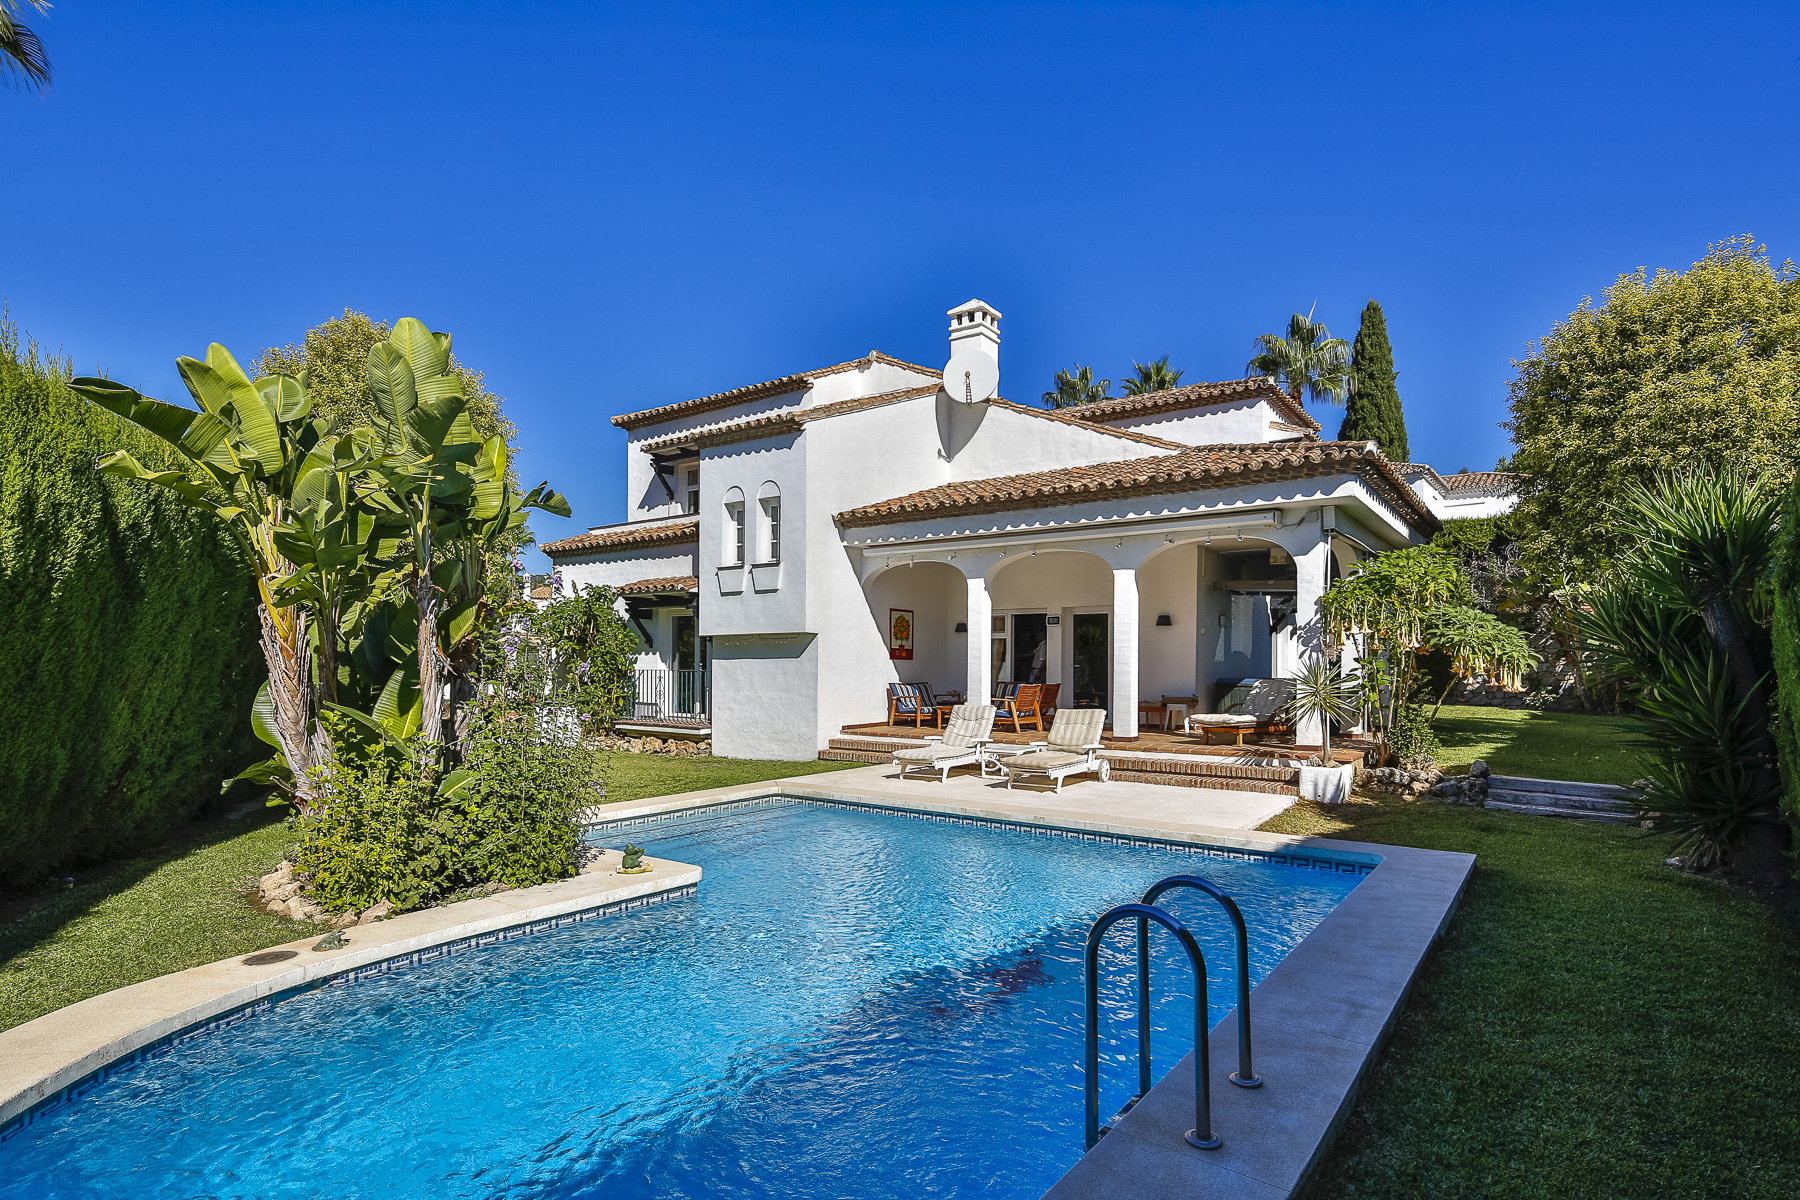 Single Family Home for Sale at BEAUTIFUL MEDITERRANEAN VILLA IN MARBELLA COUNTRY CLUB, NUEVA ANDALUCIA Other Andalucia, Andalucia, Spain